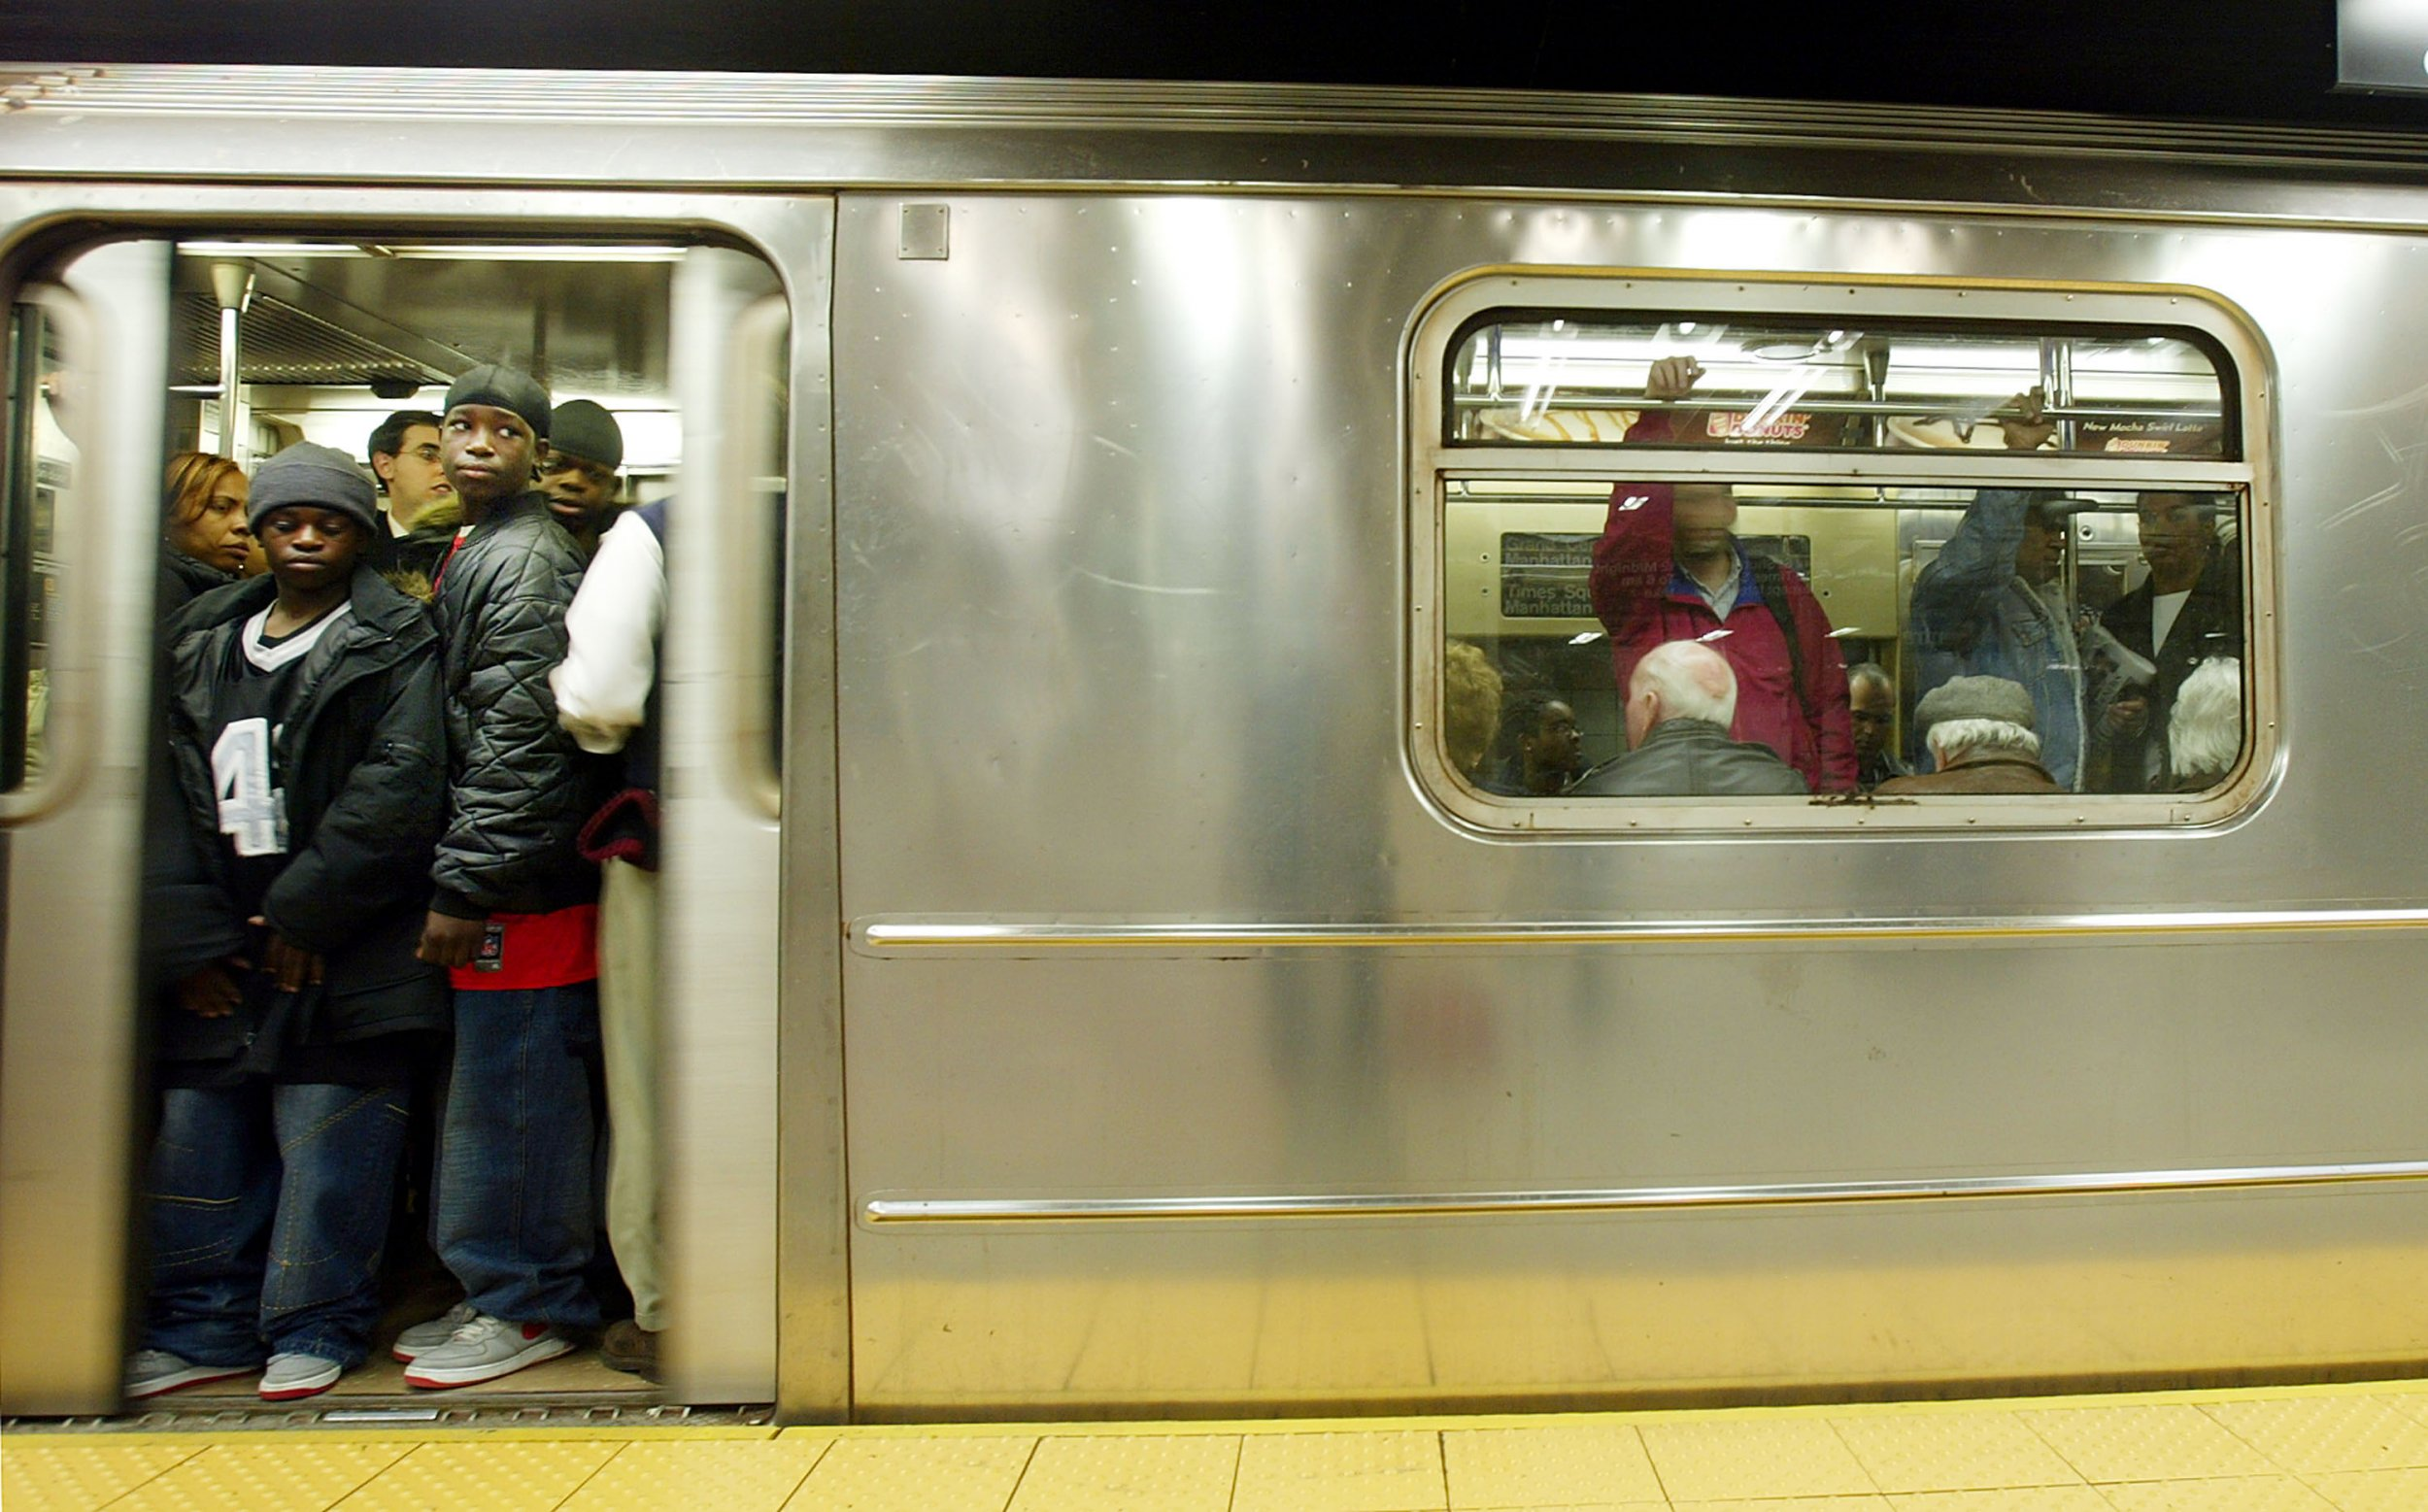 new york city subway crisis spurs calls to oust governor